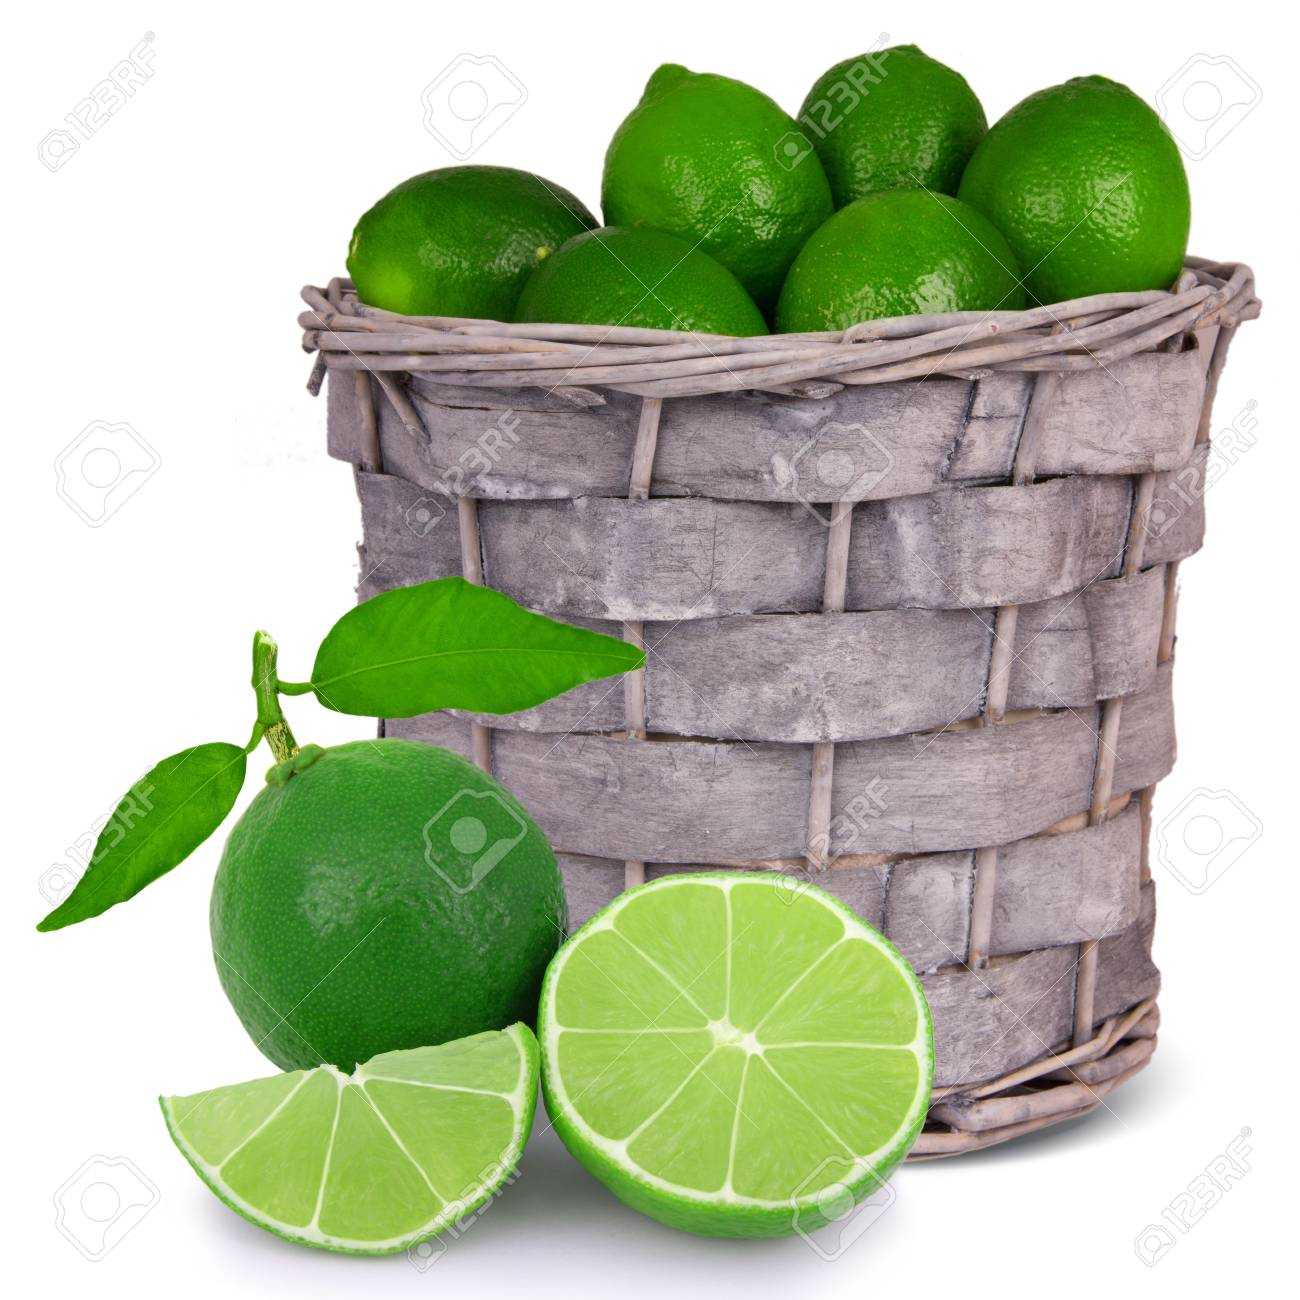 Basket with limes isolated on white Stock Photo - 13496239